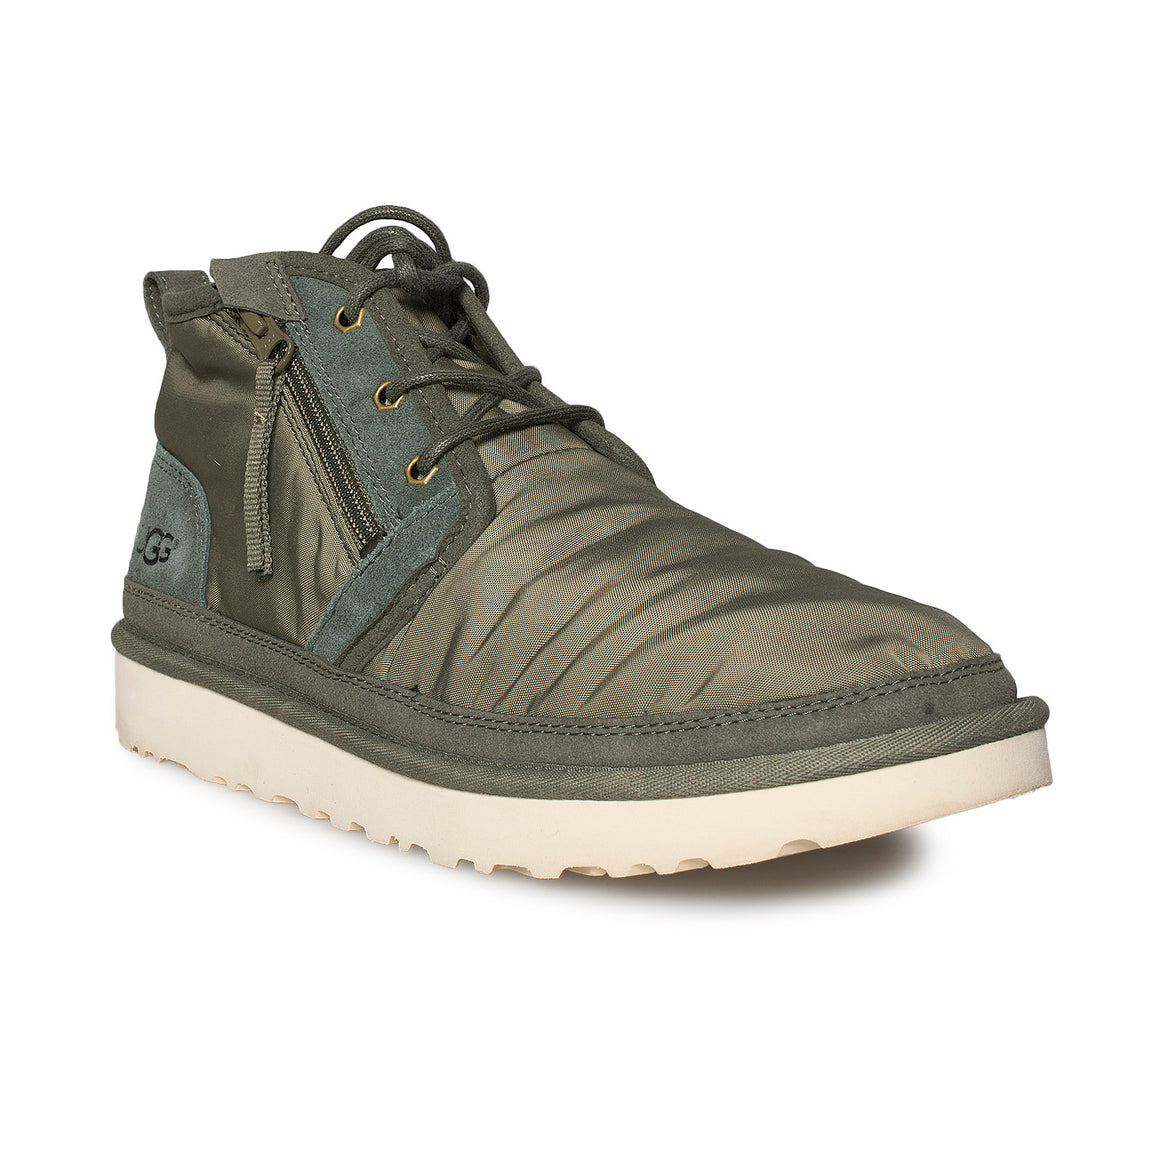 UGG Neumel Zip Military Green Boots - Men's